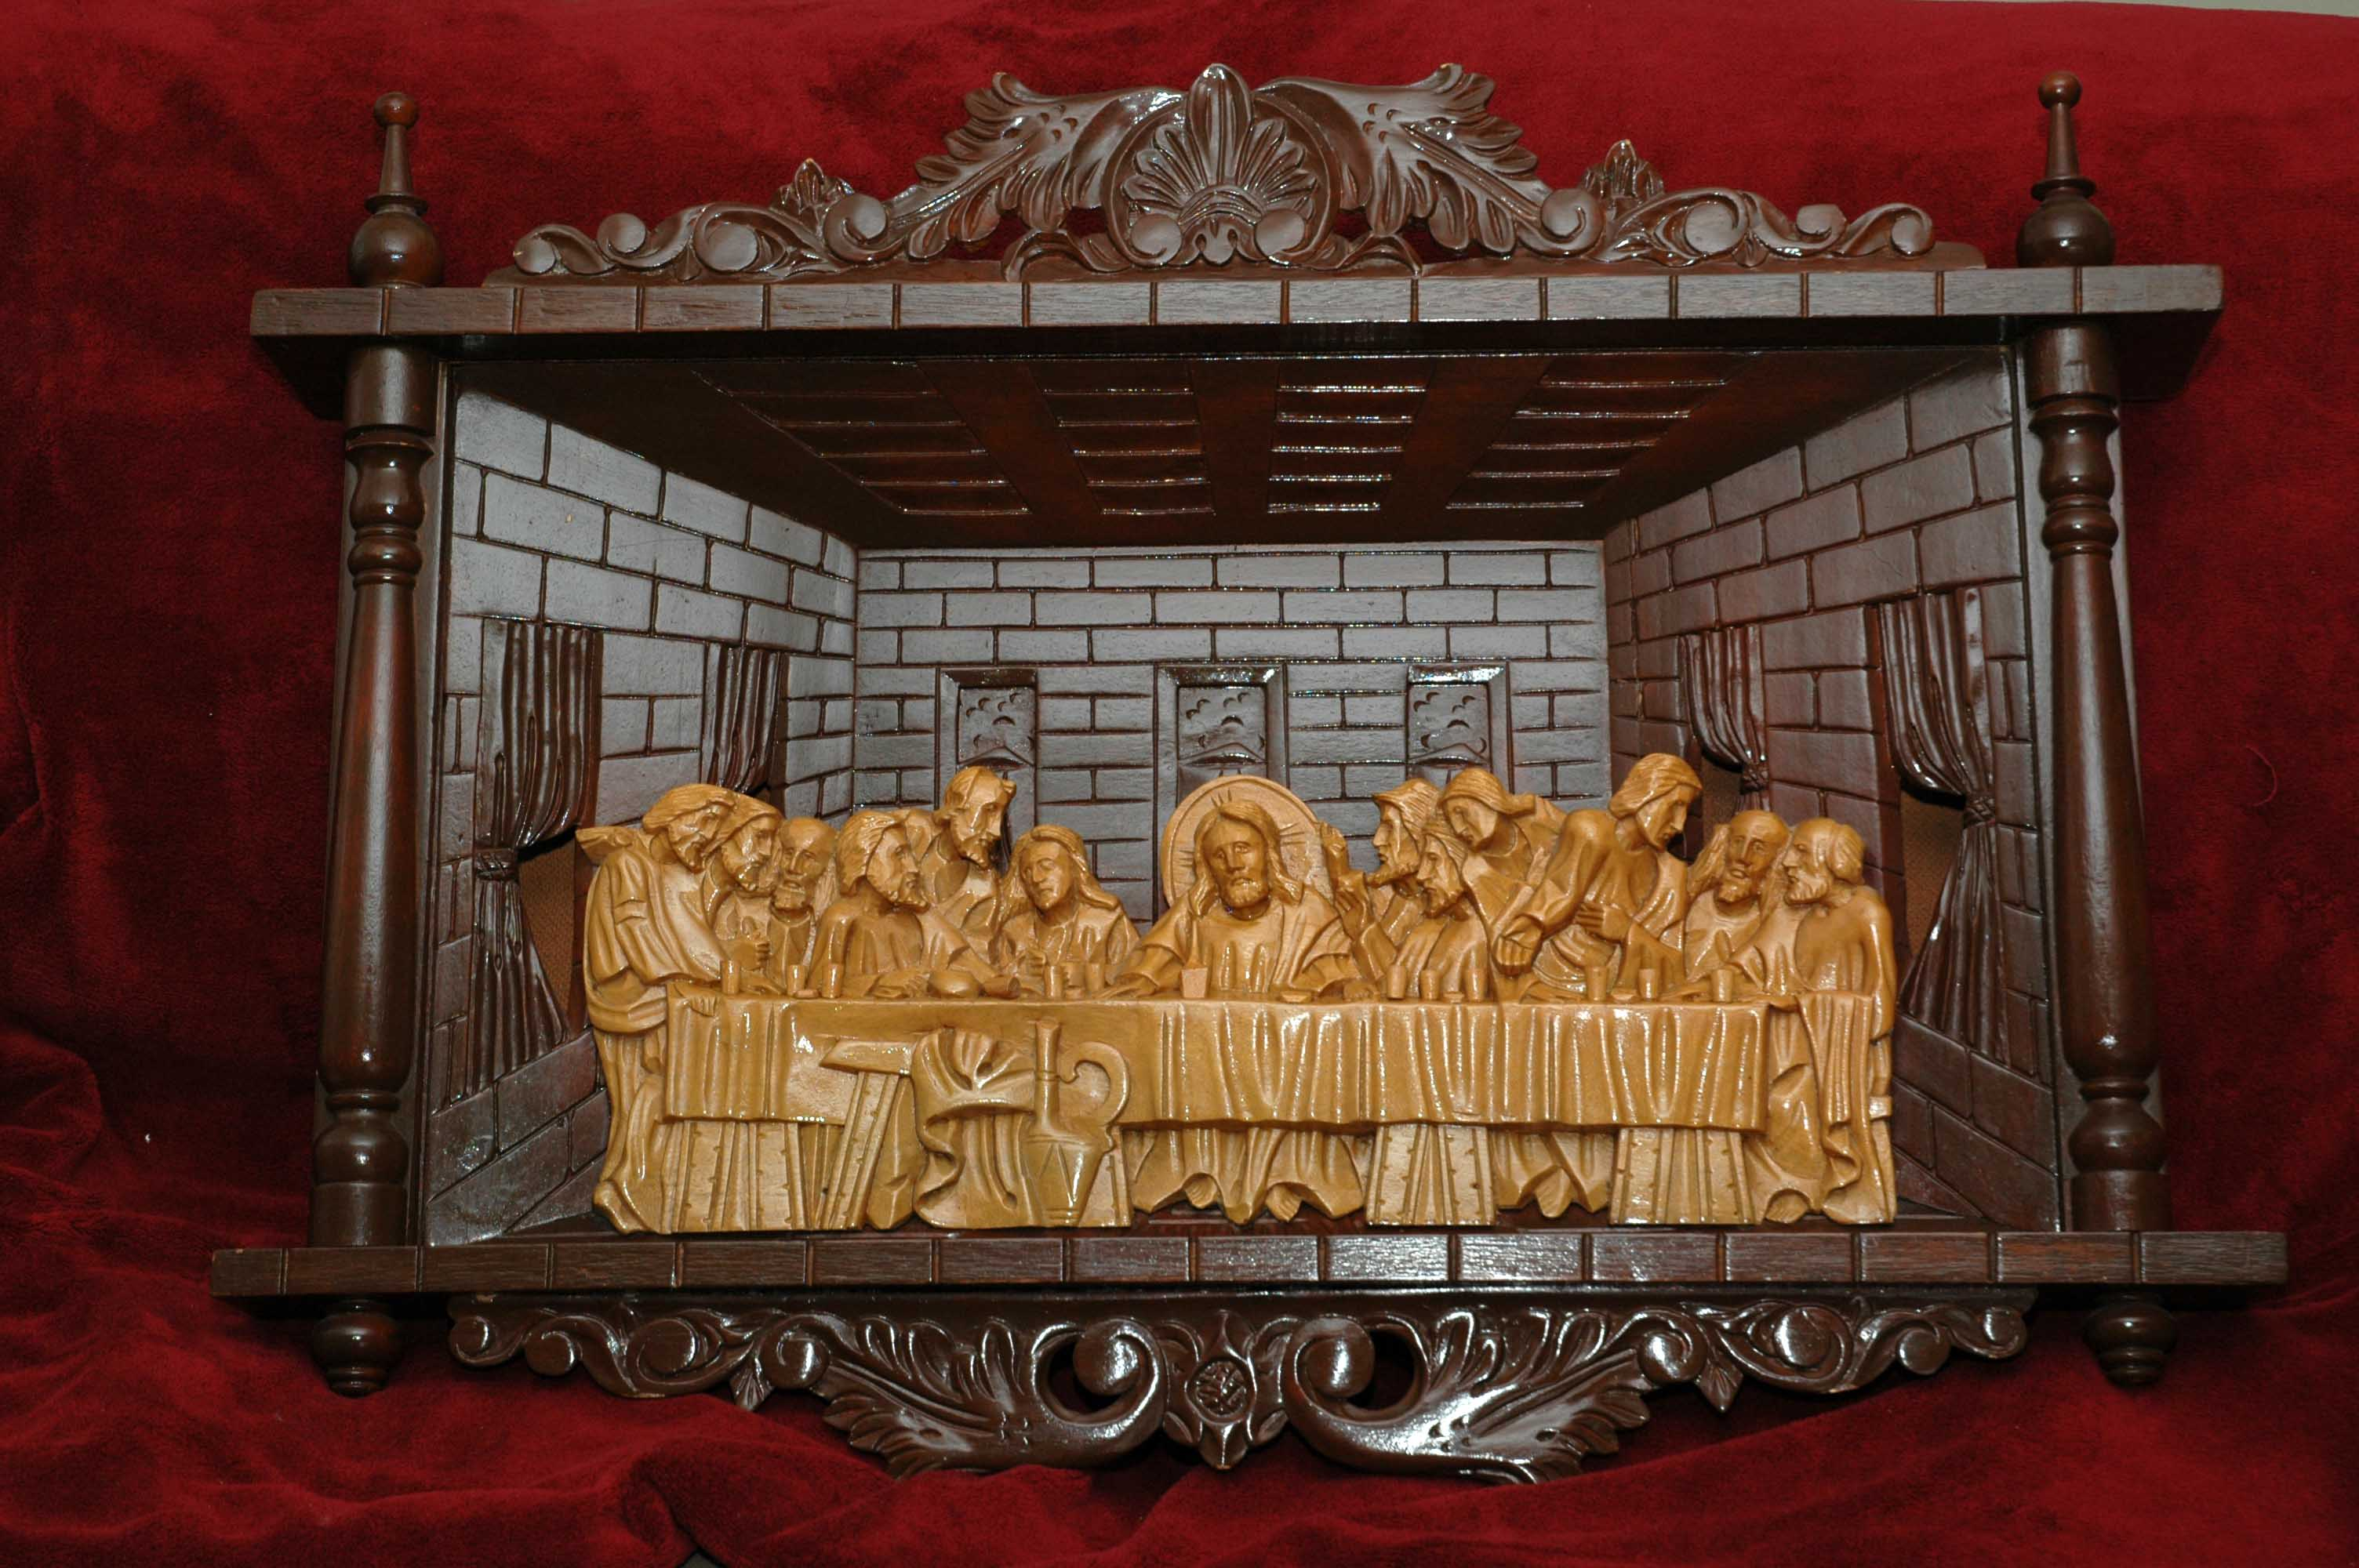 Hand carved last supper antique appraisal instappraisal